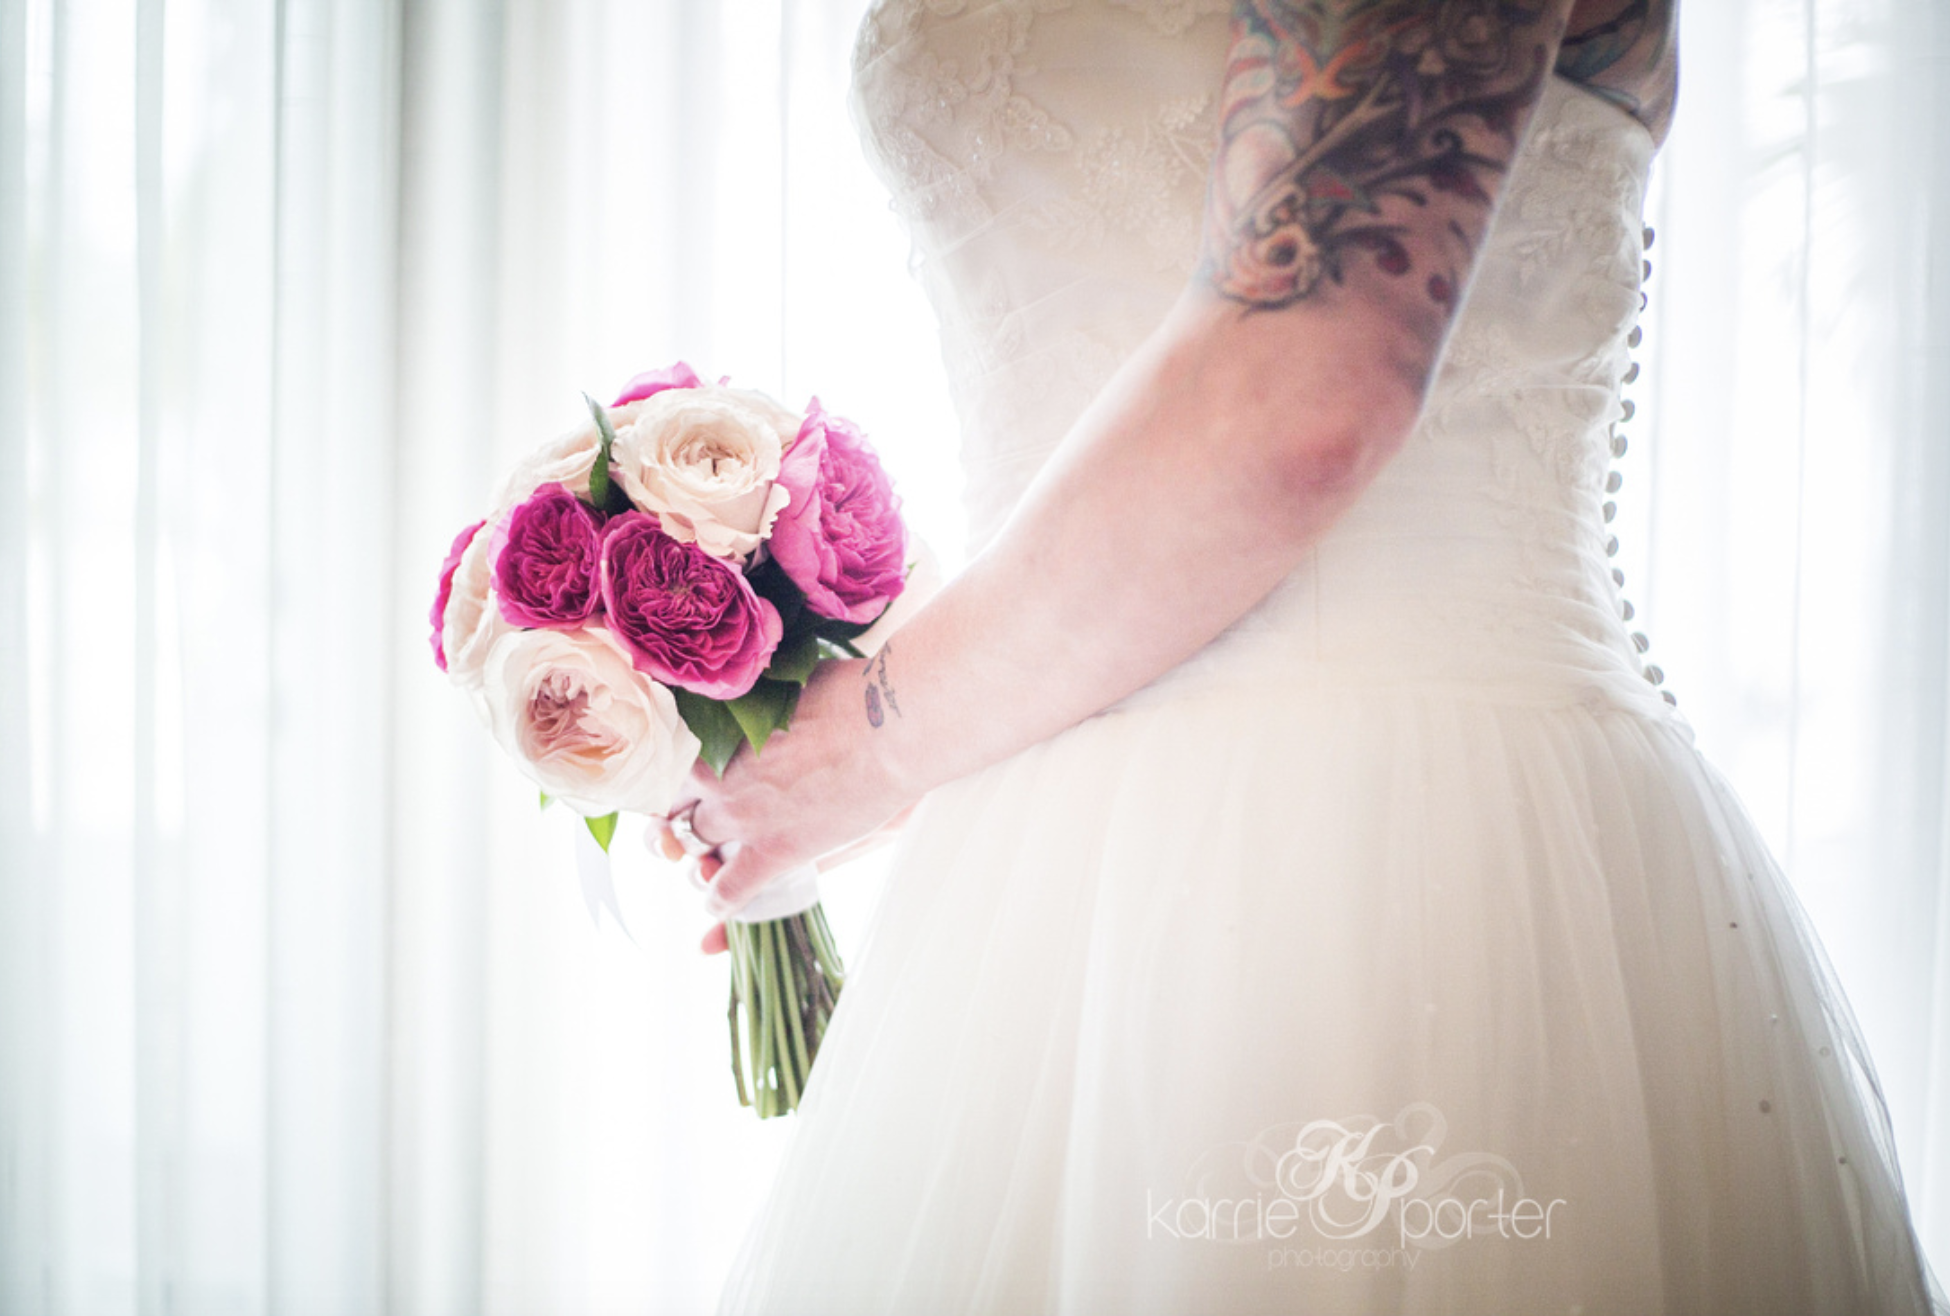 Bride-with-tattoo-arm-holding-flowers.png